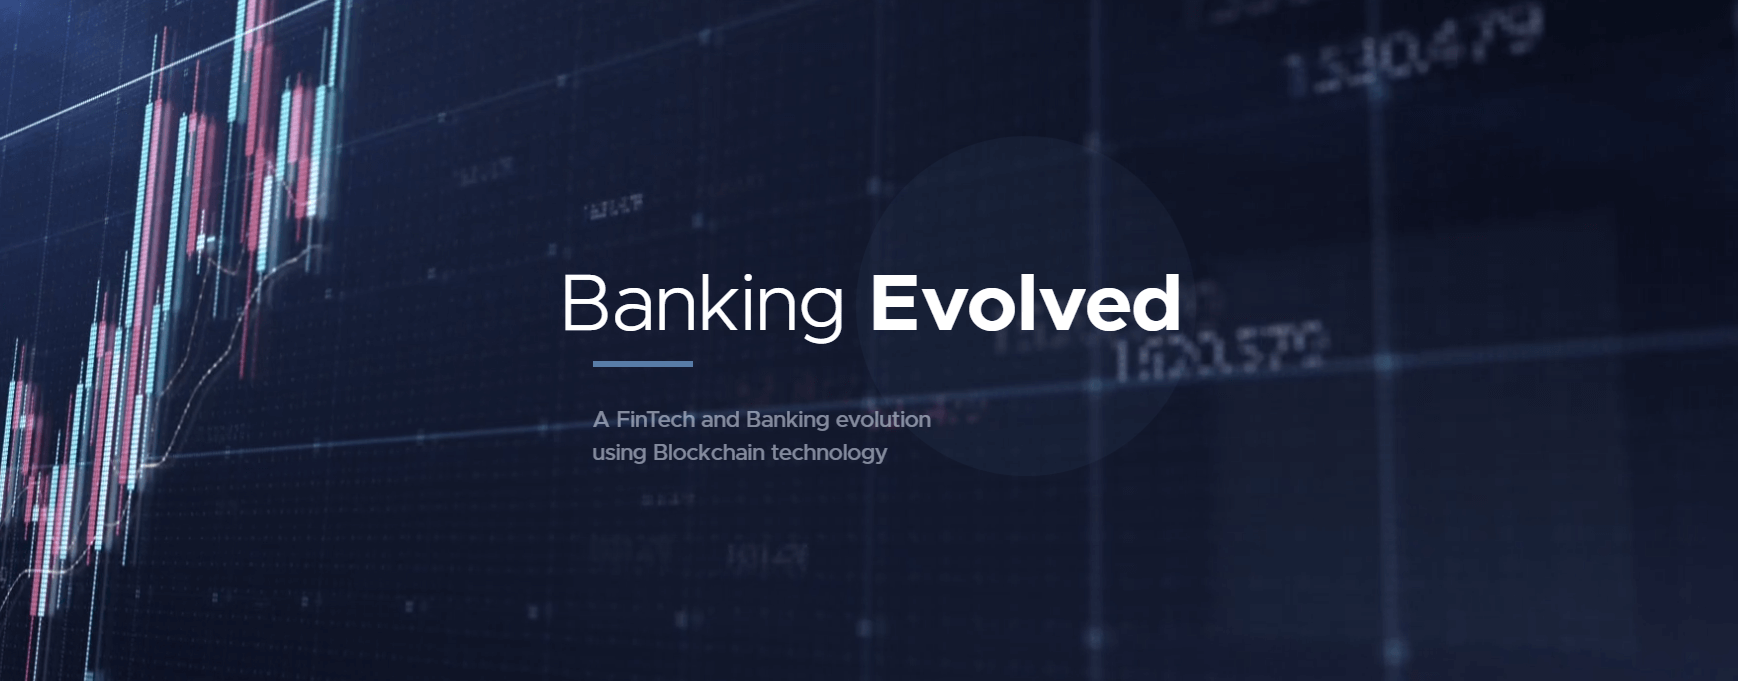 BankSocial Completes Ecosystem Upgrade & Relaunches as BSL on the Binance Smart Chain 6